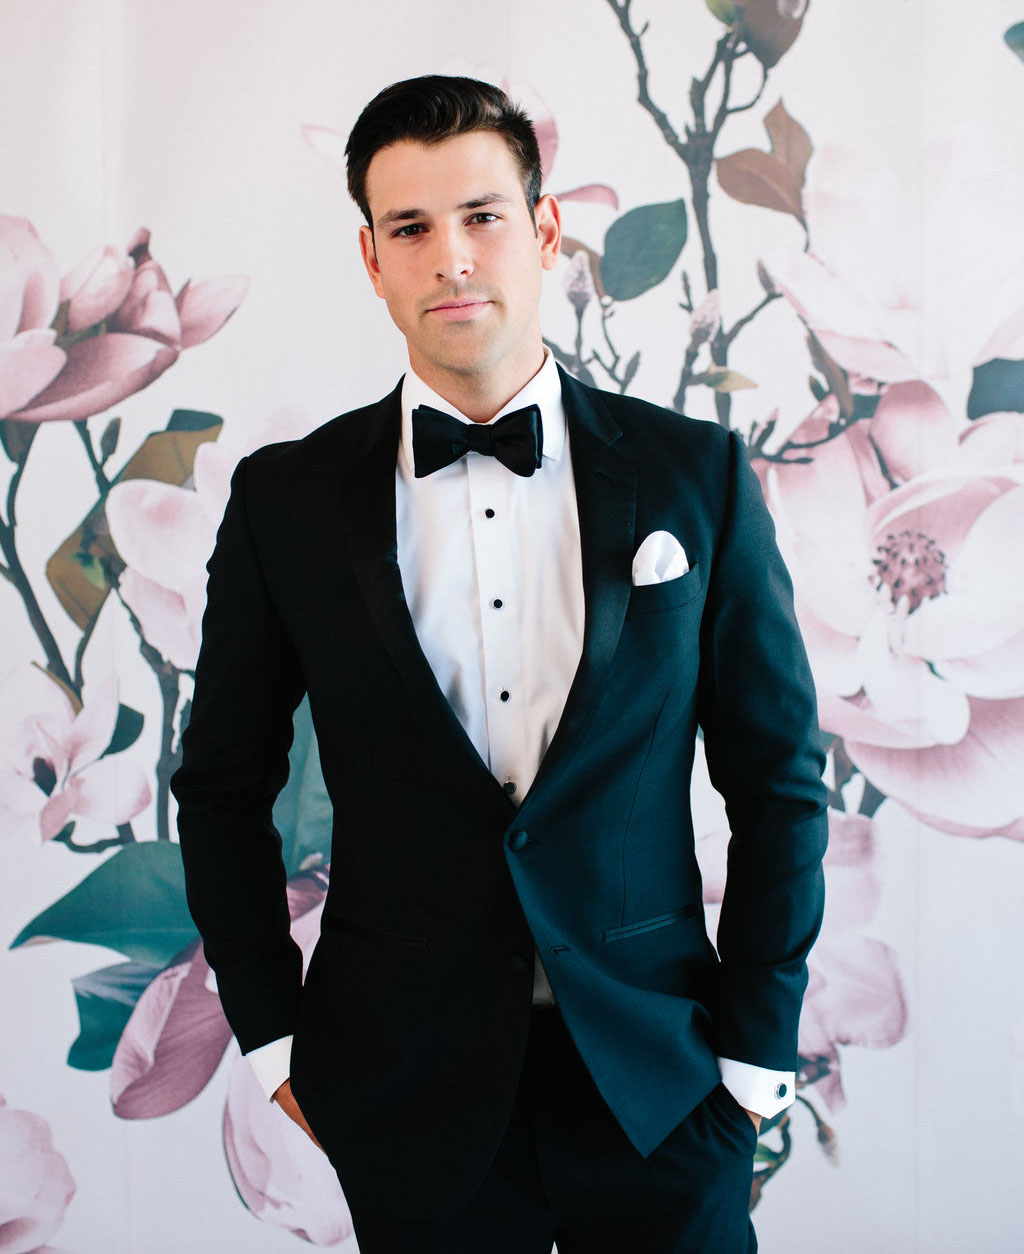 Wedding Tux Rental.Rent A Suit And Slay Wedding Season With These Looks From